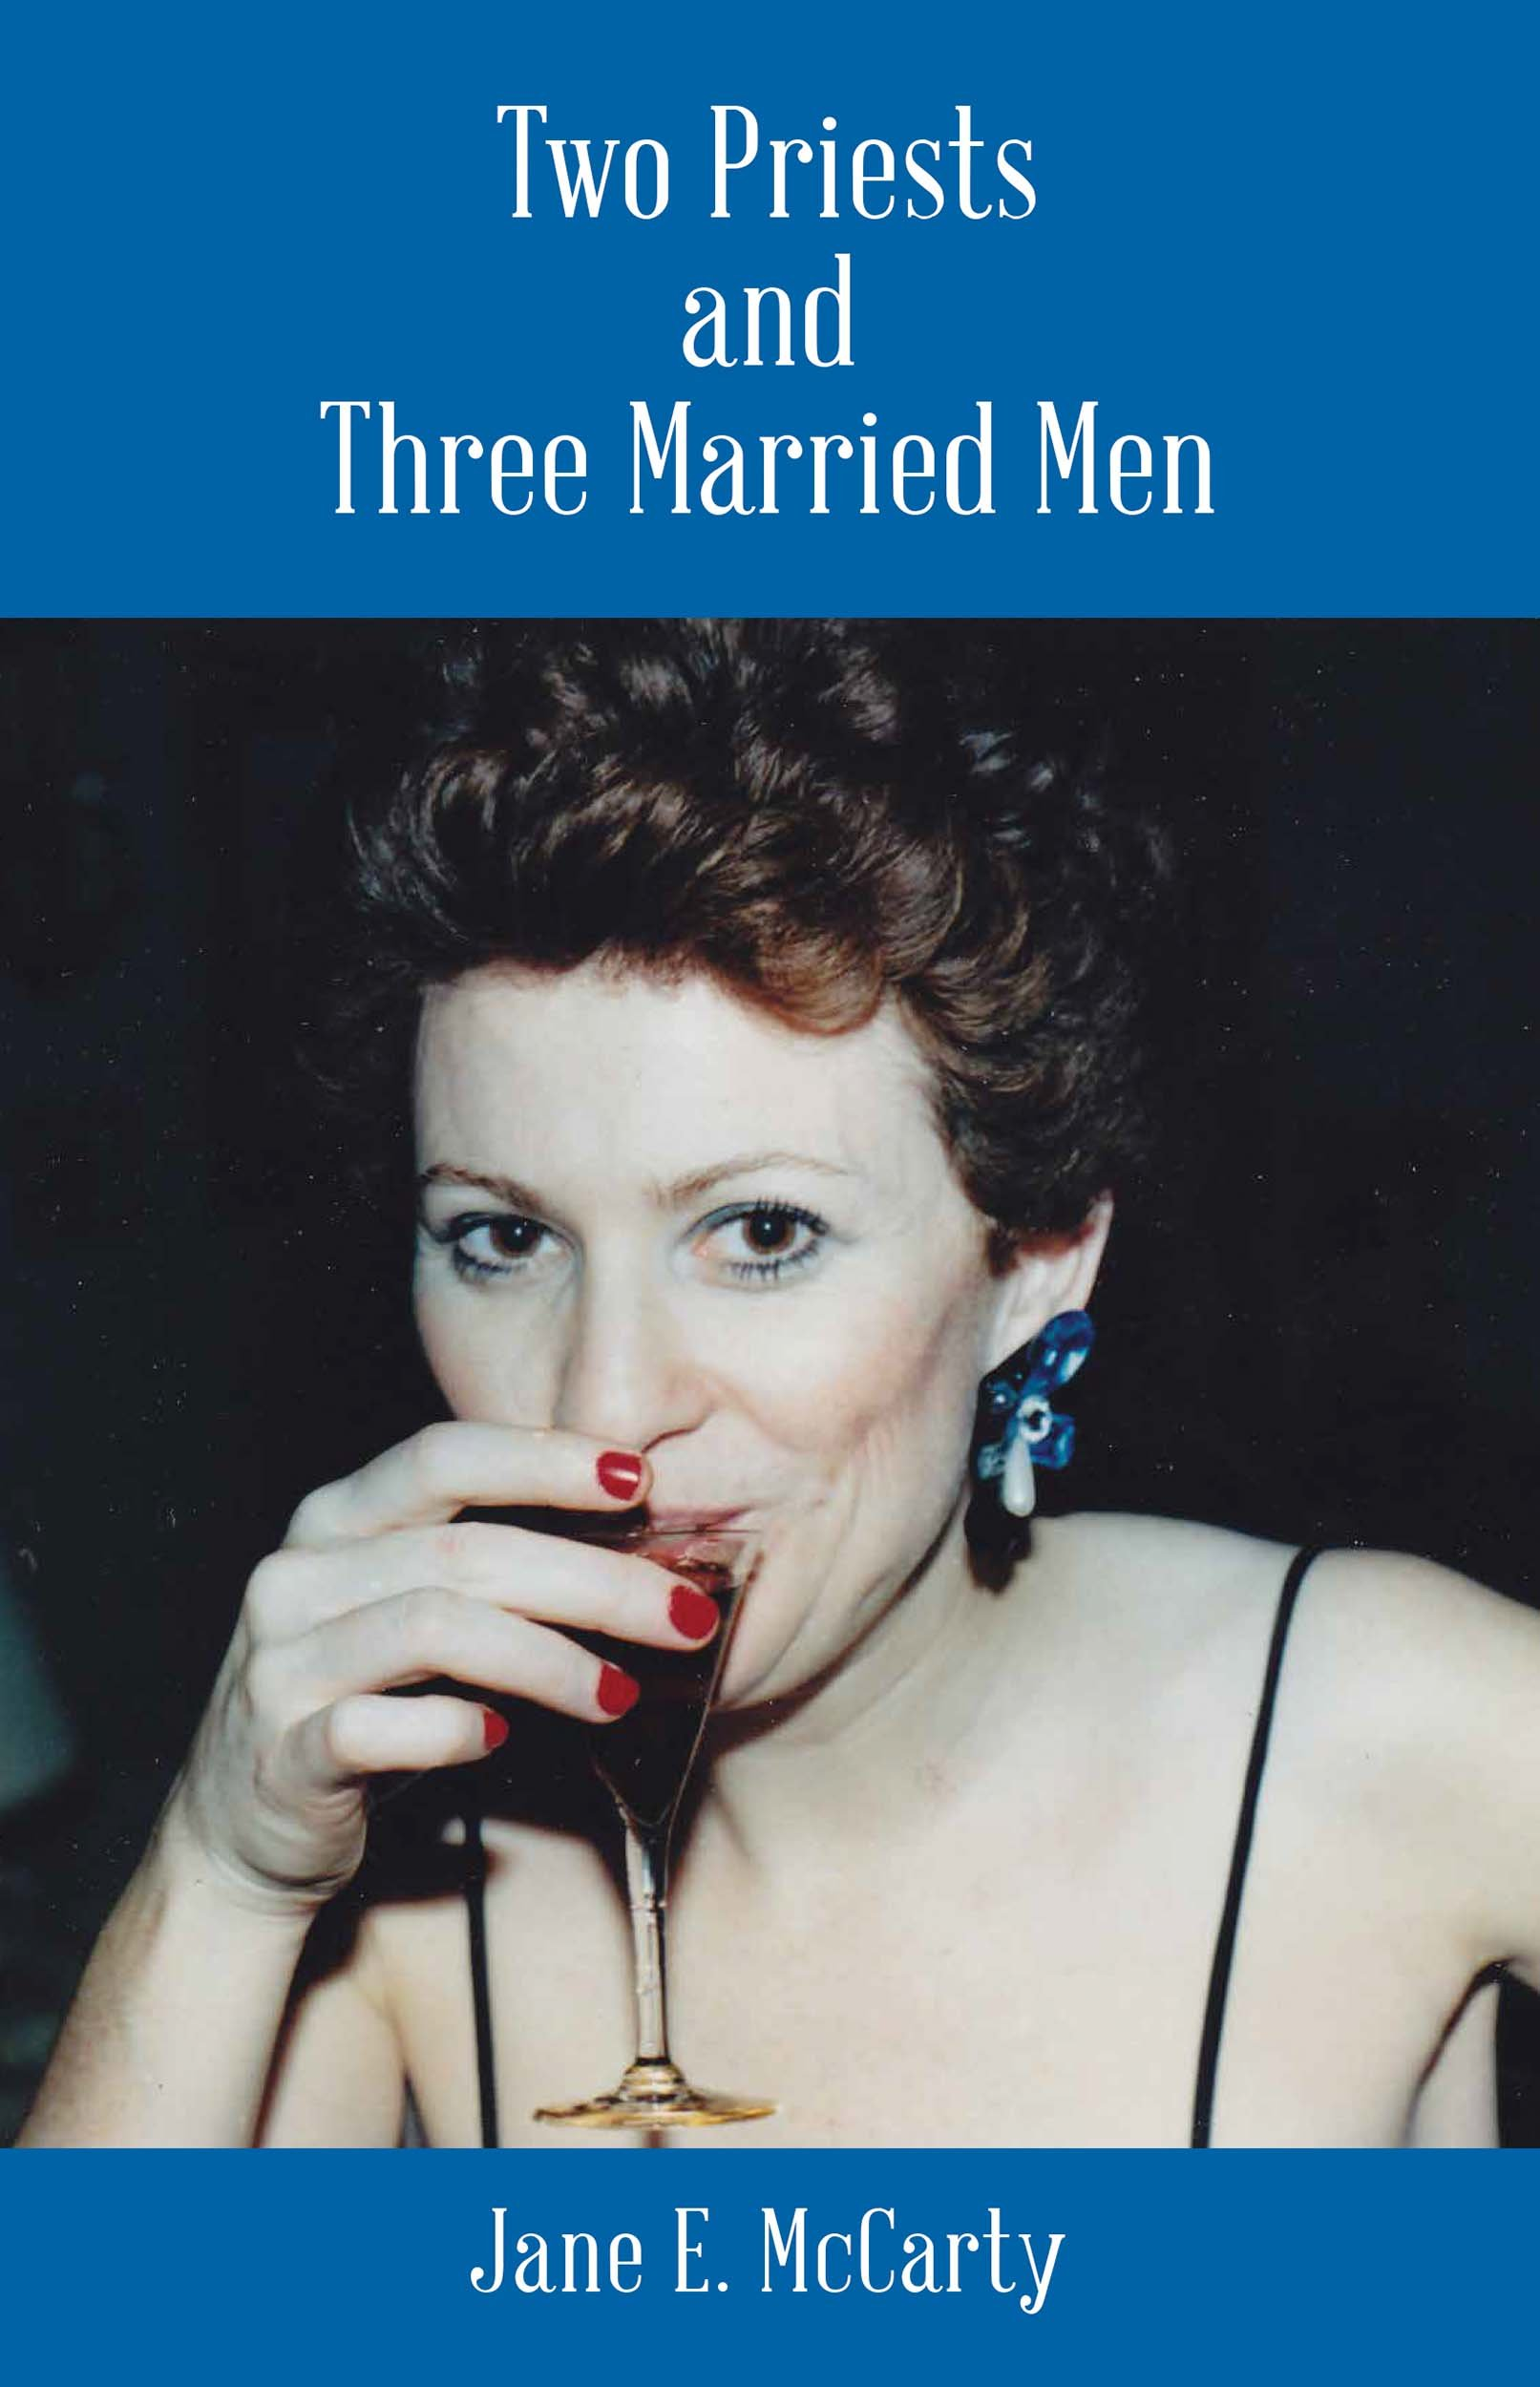 Download Two Priests and Three Married Men PDF